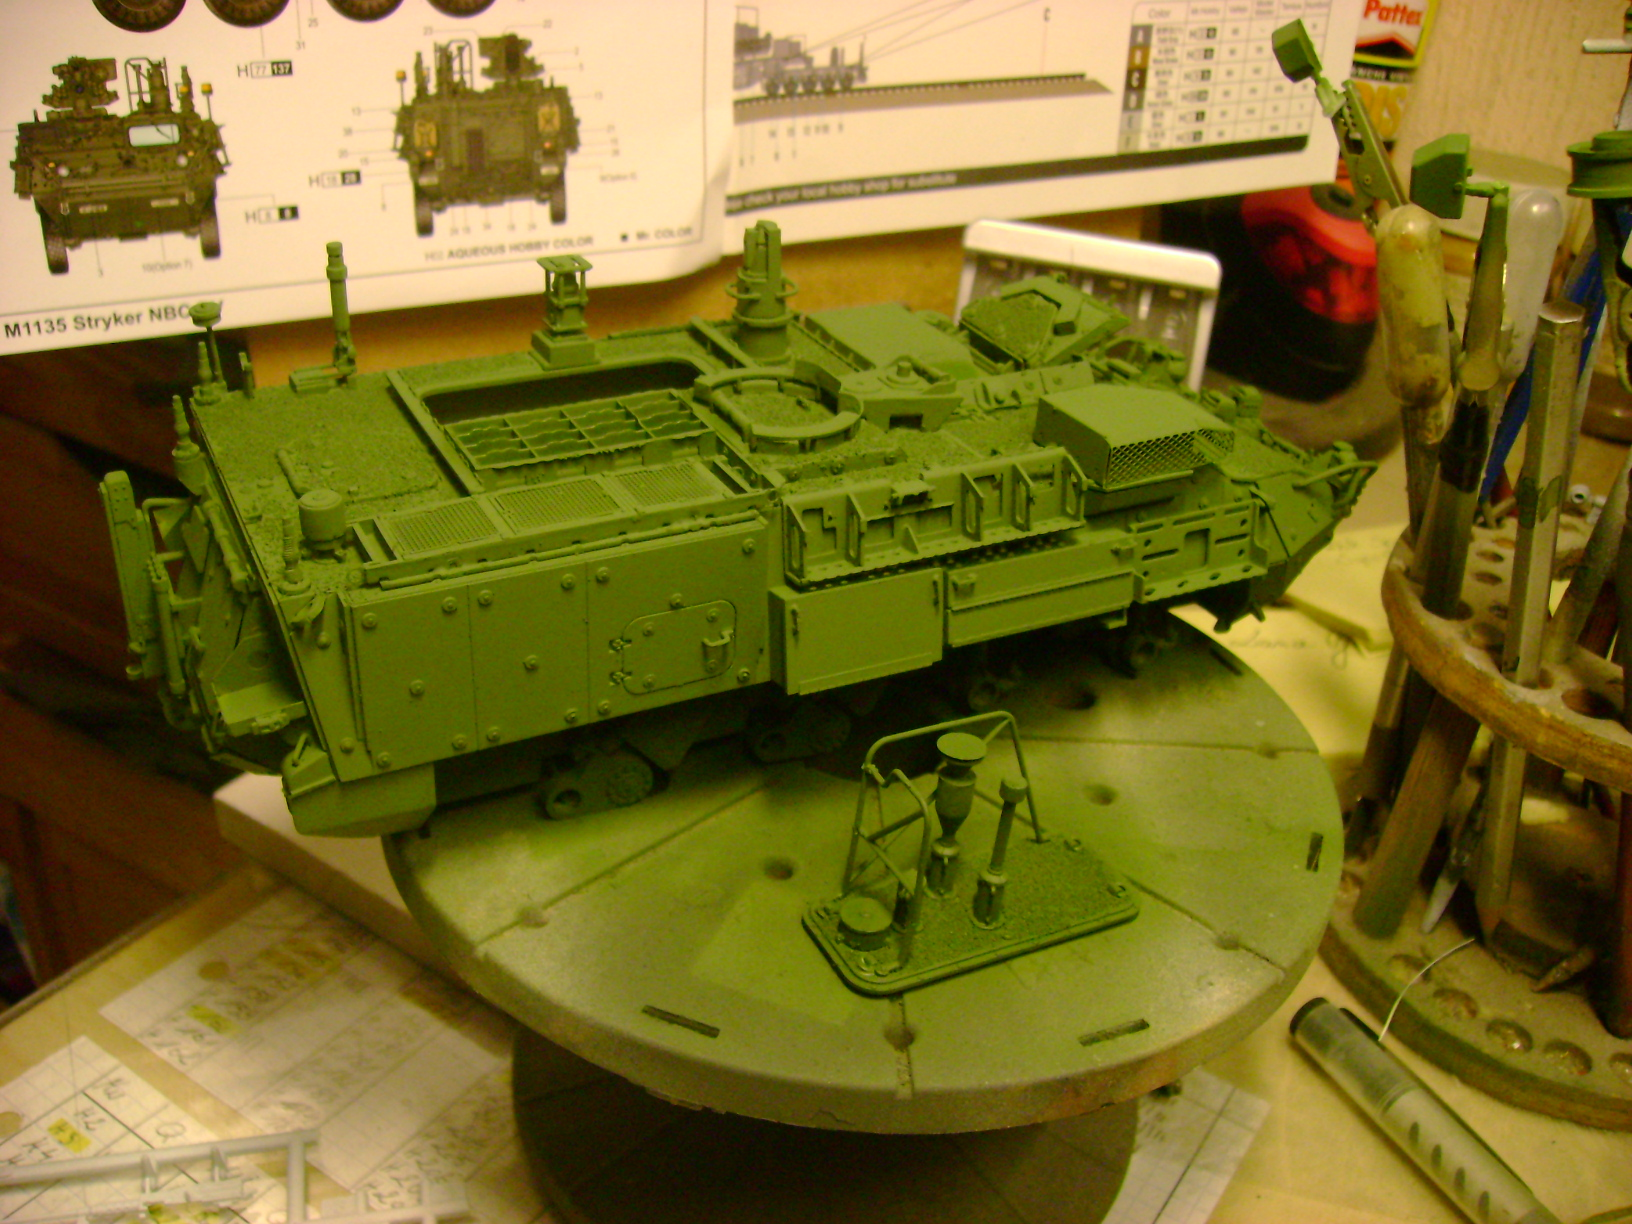 M1135 Stryker NBC RV 1/35 Trumpeter....Terminer Up du 29/10... - Page 3 86915545